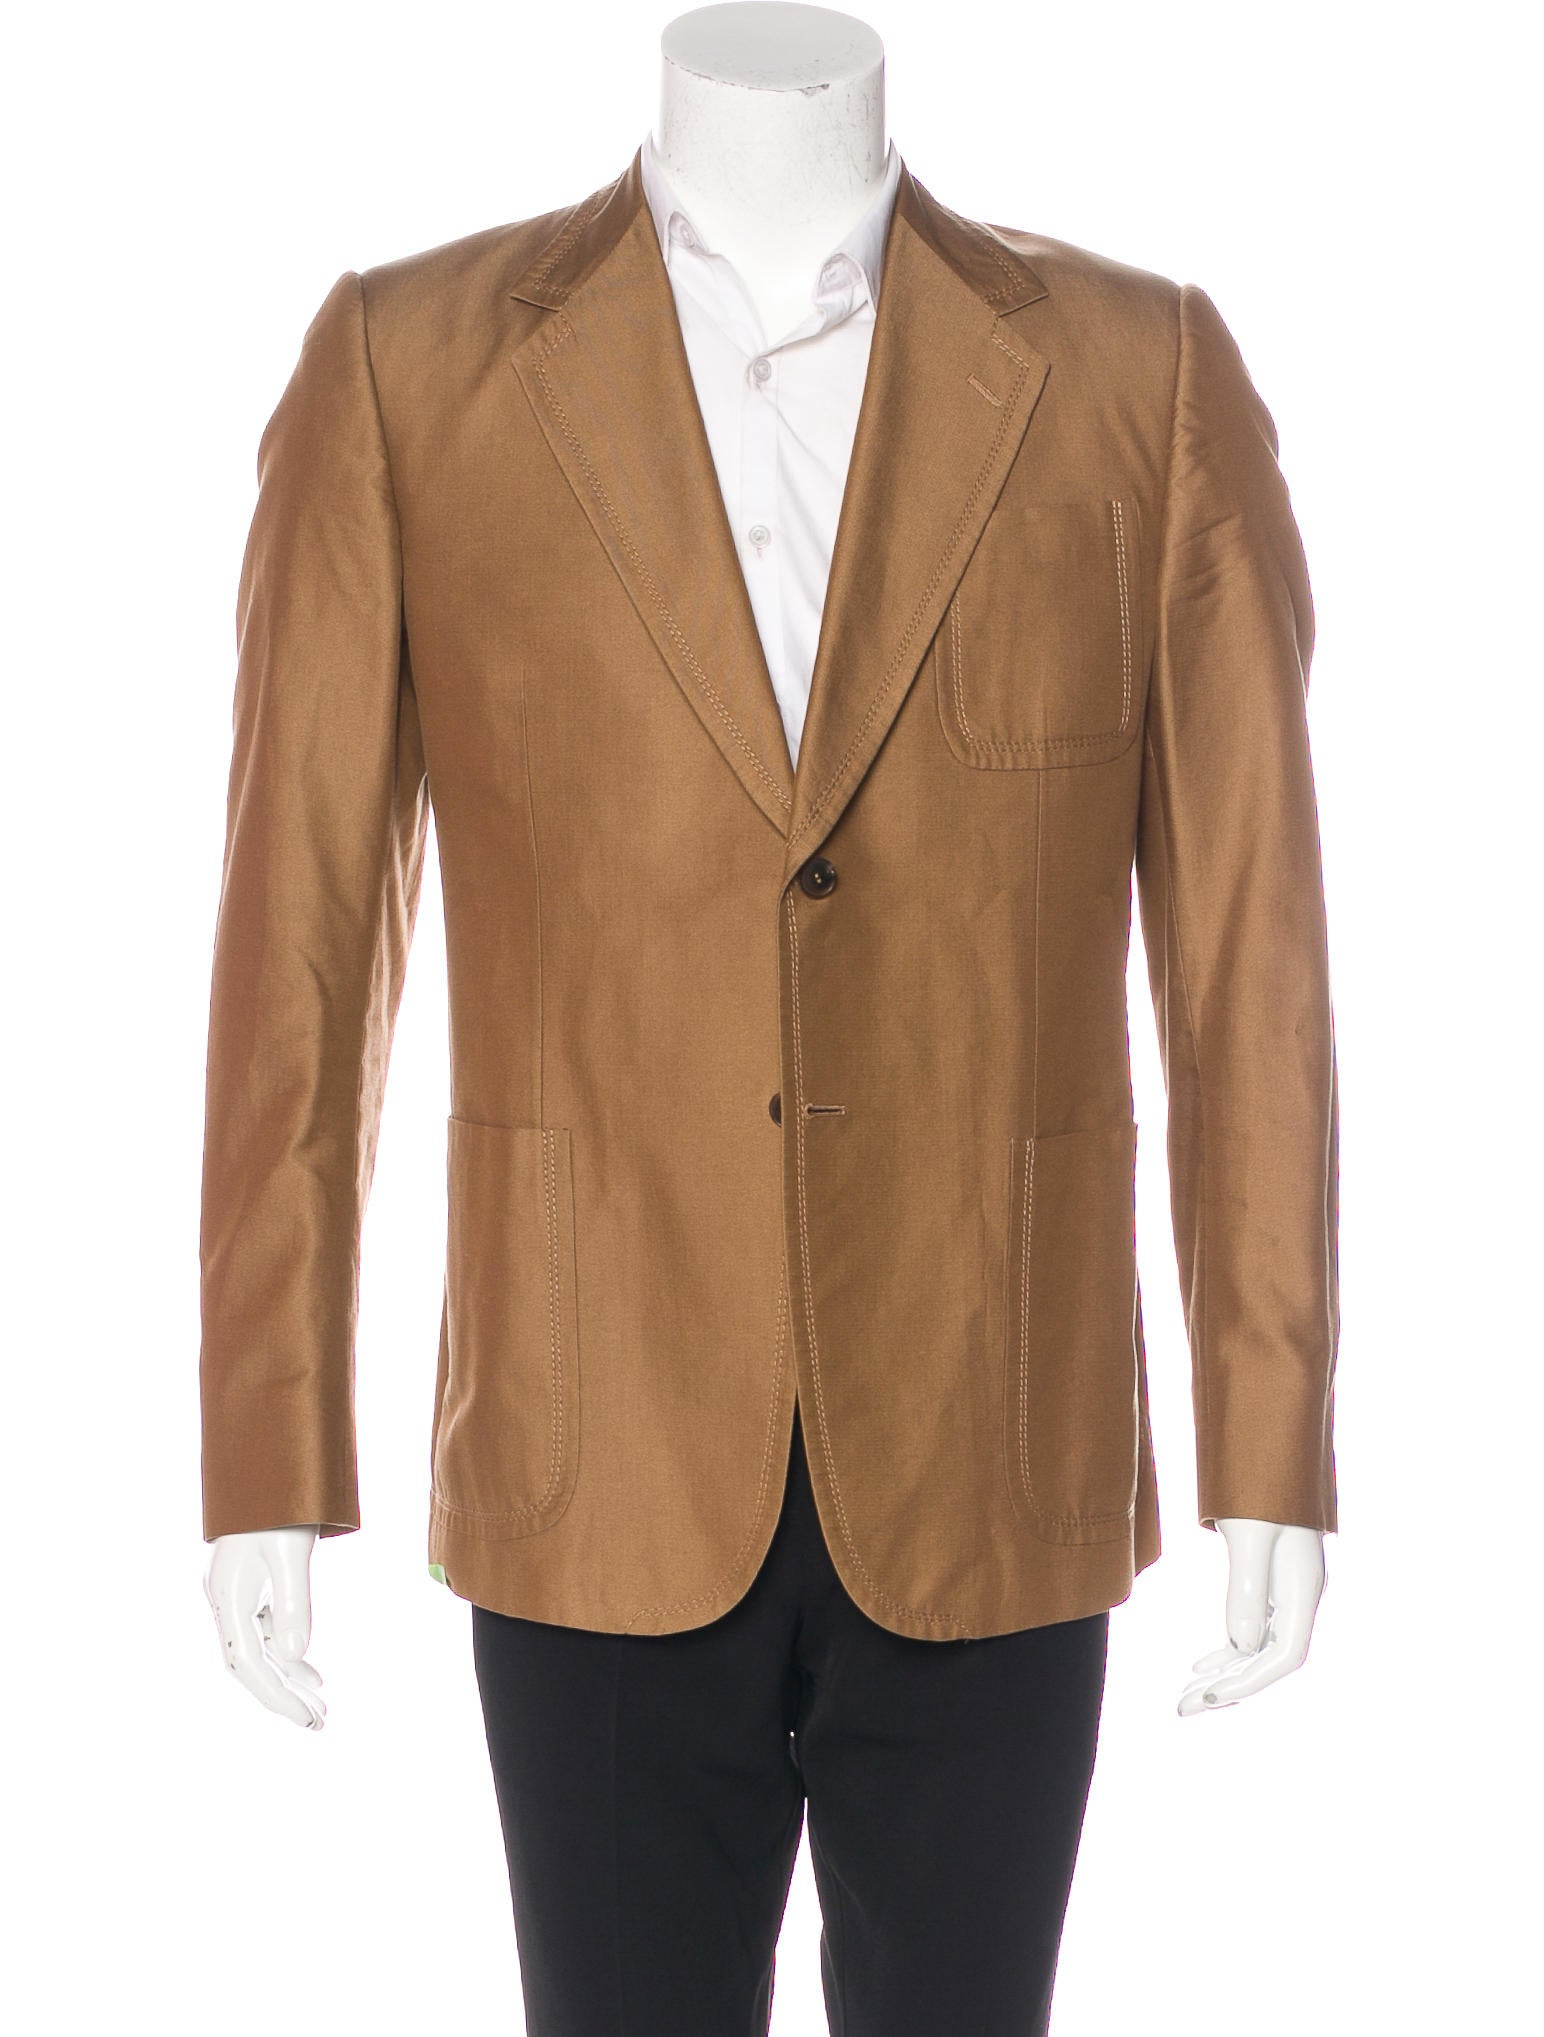 Gucci Silk-Blend Sport Coat - Clothing - GUC171114 | The RealReal